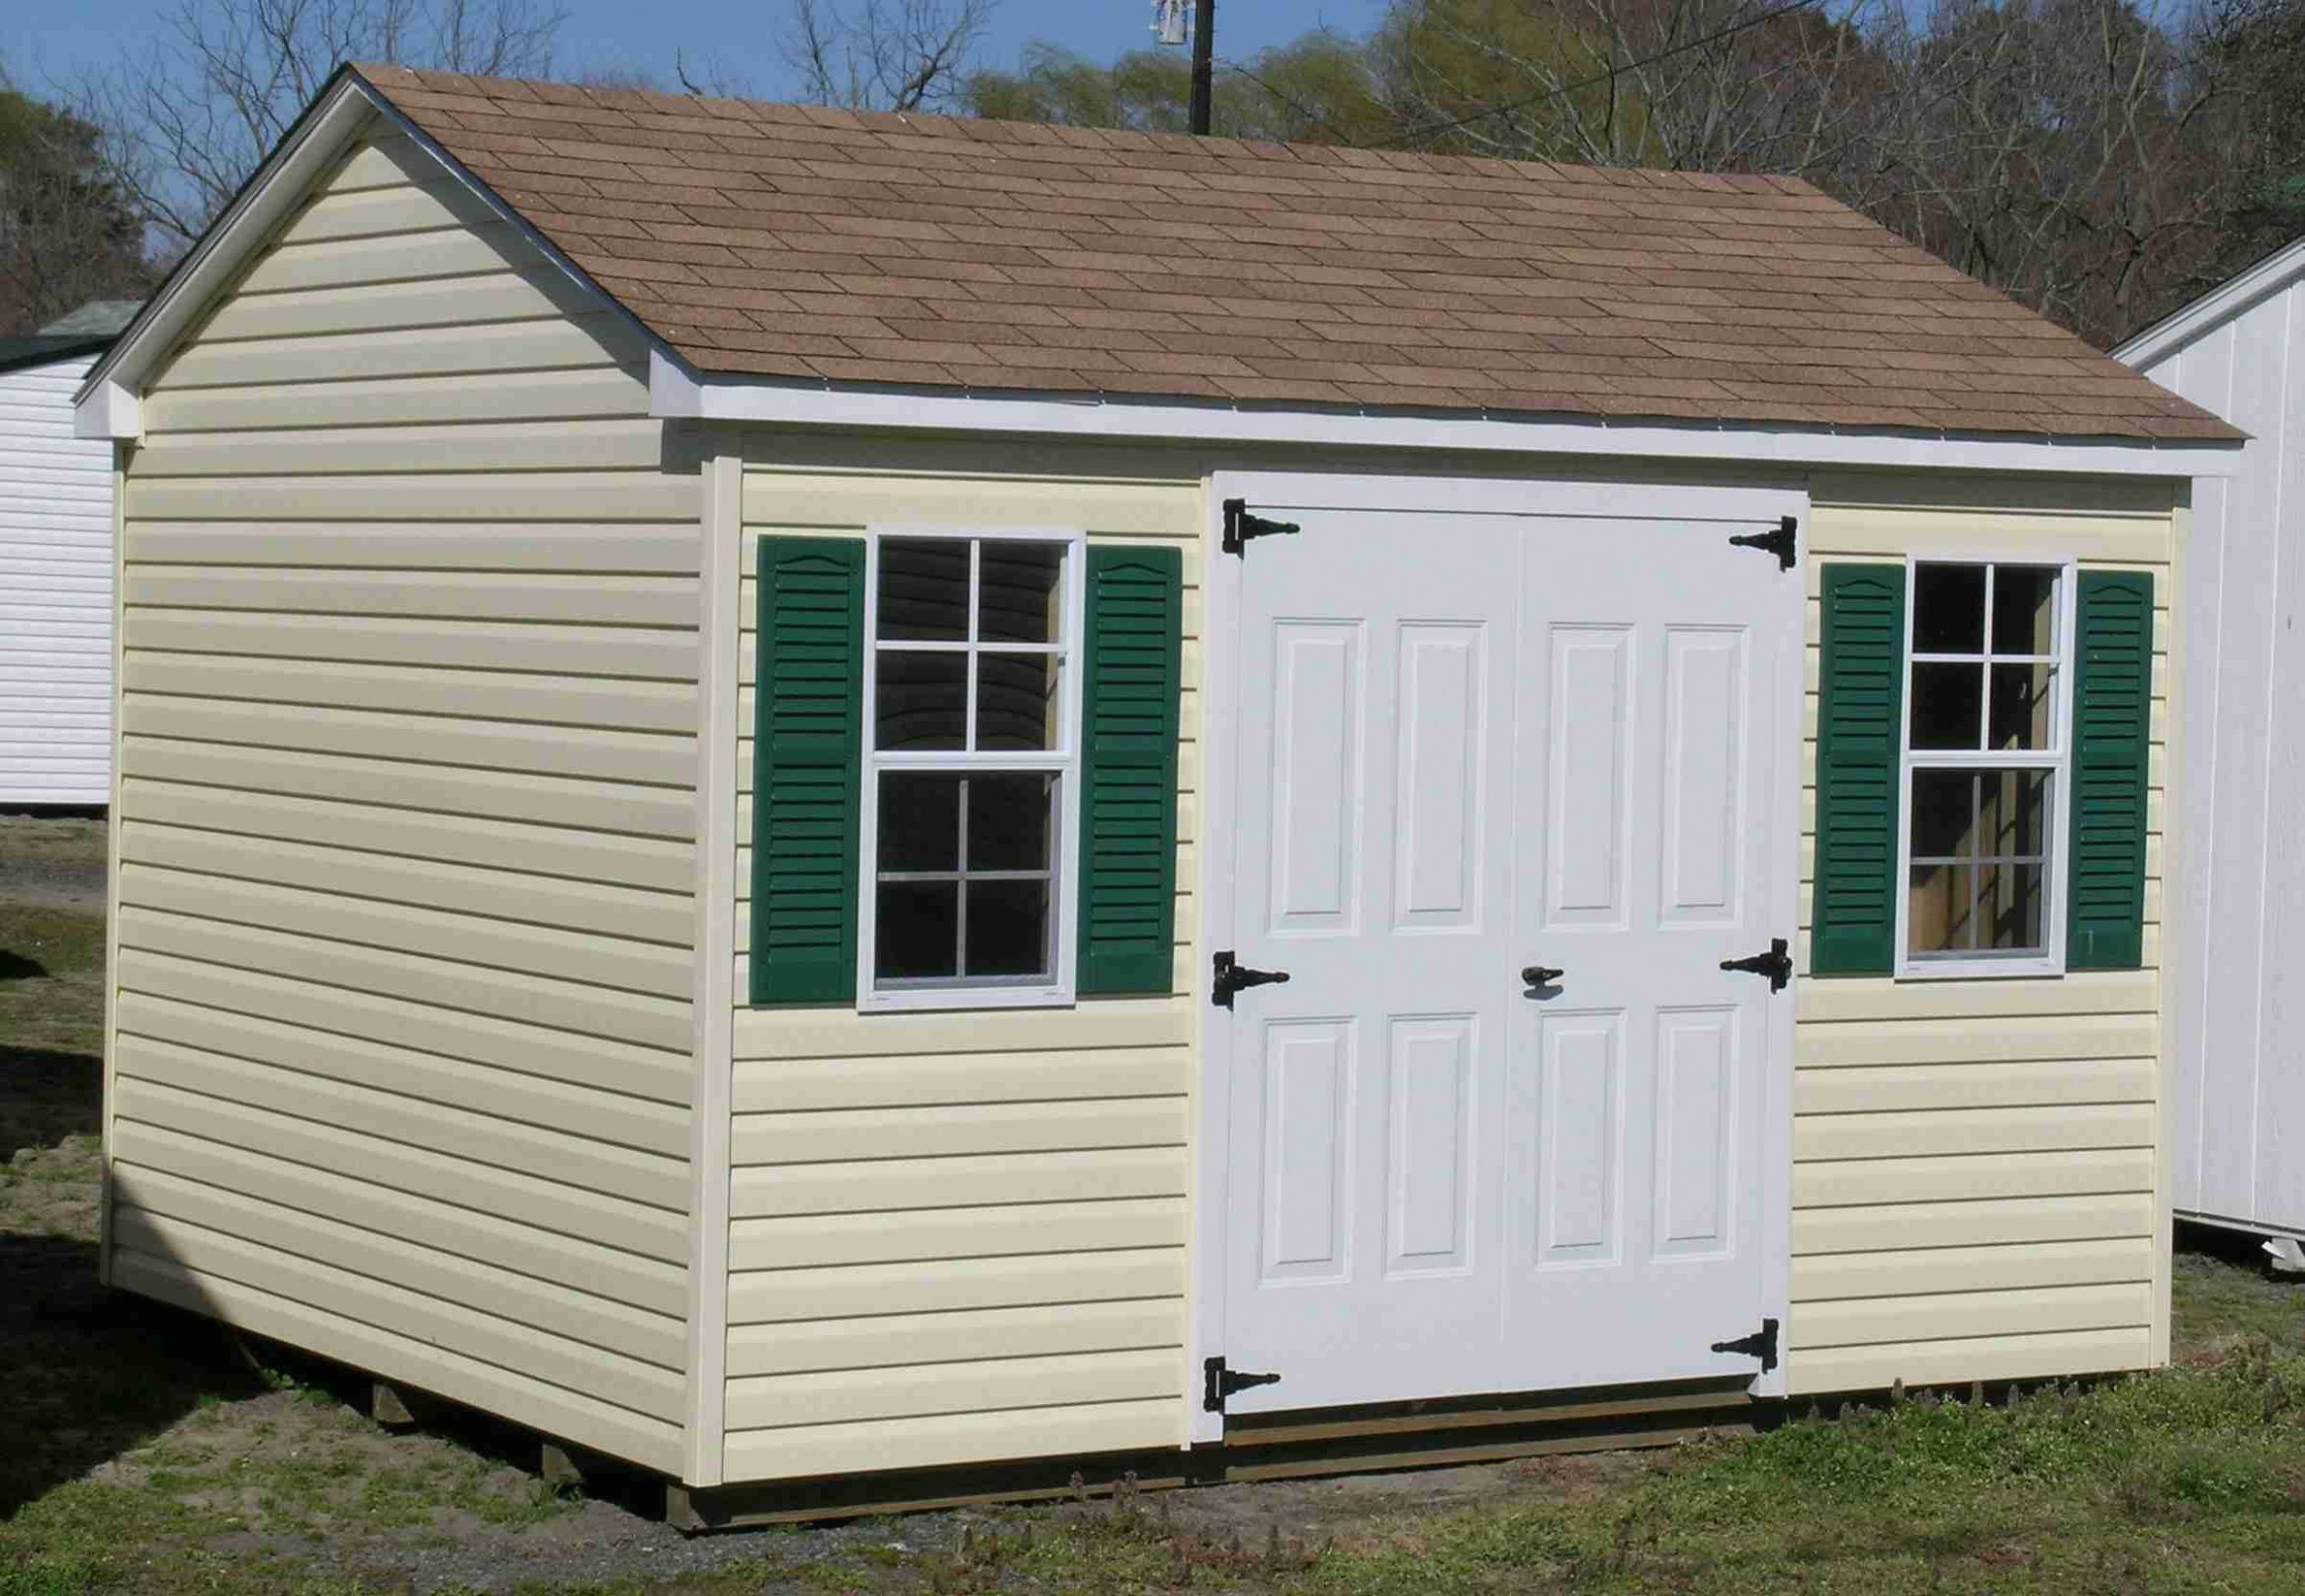 7 Reasons Why People Like Sheds Garages And Carports | sheds garages and carports